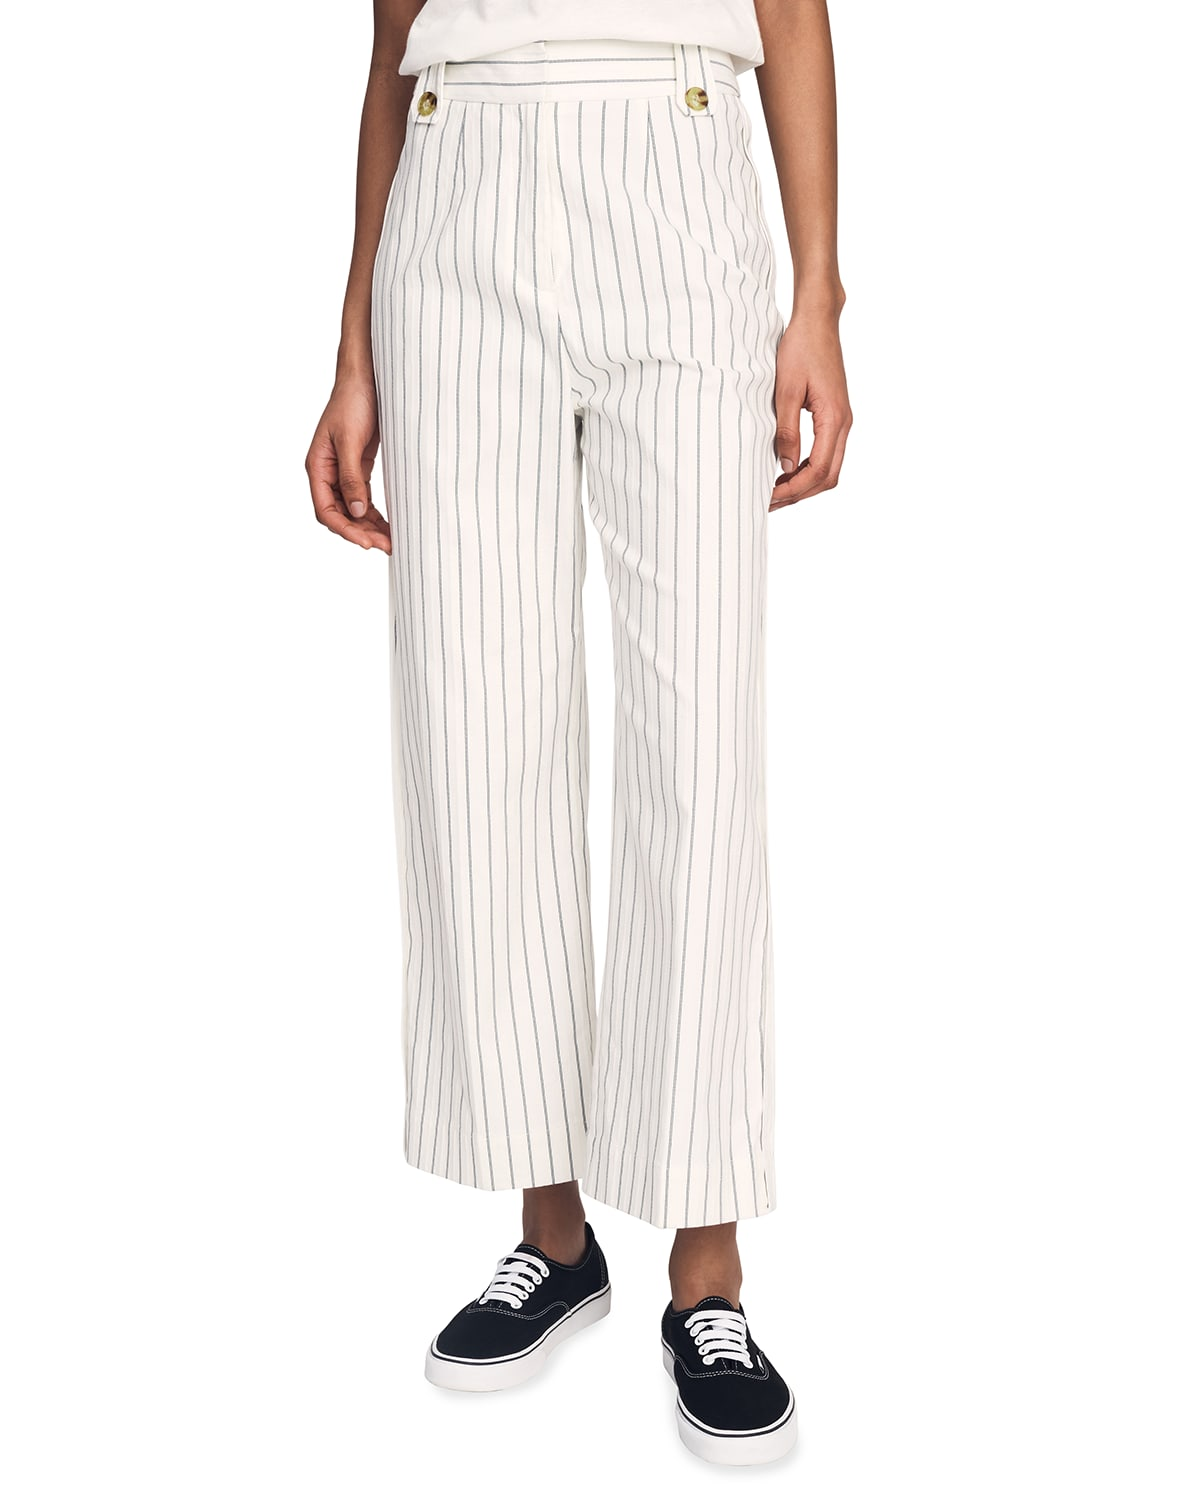 Jerry High-Waist Striped Trousers